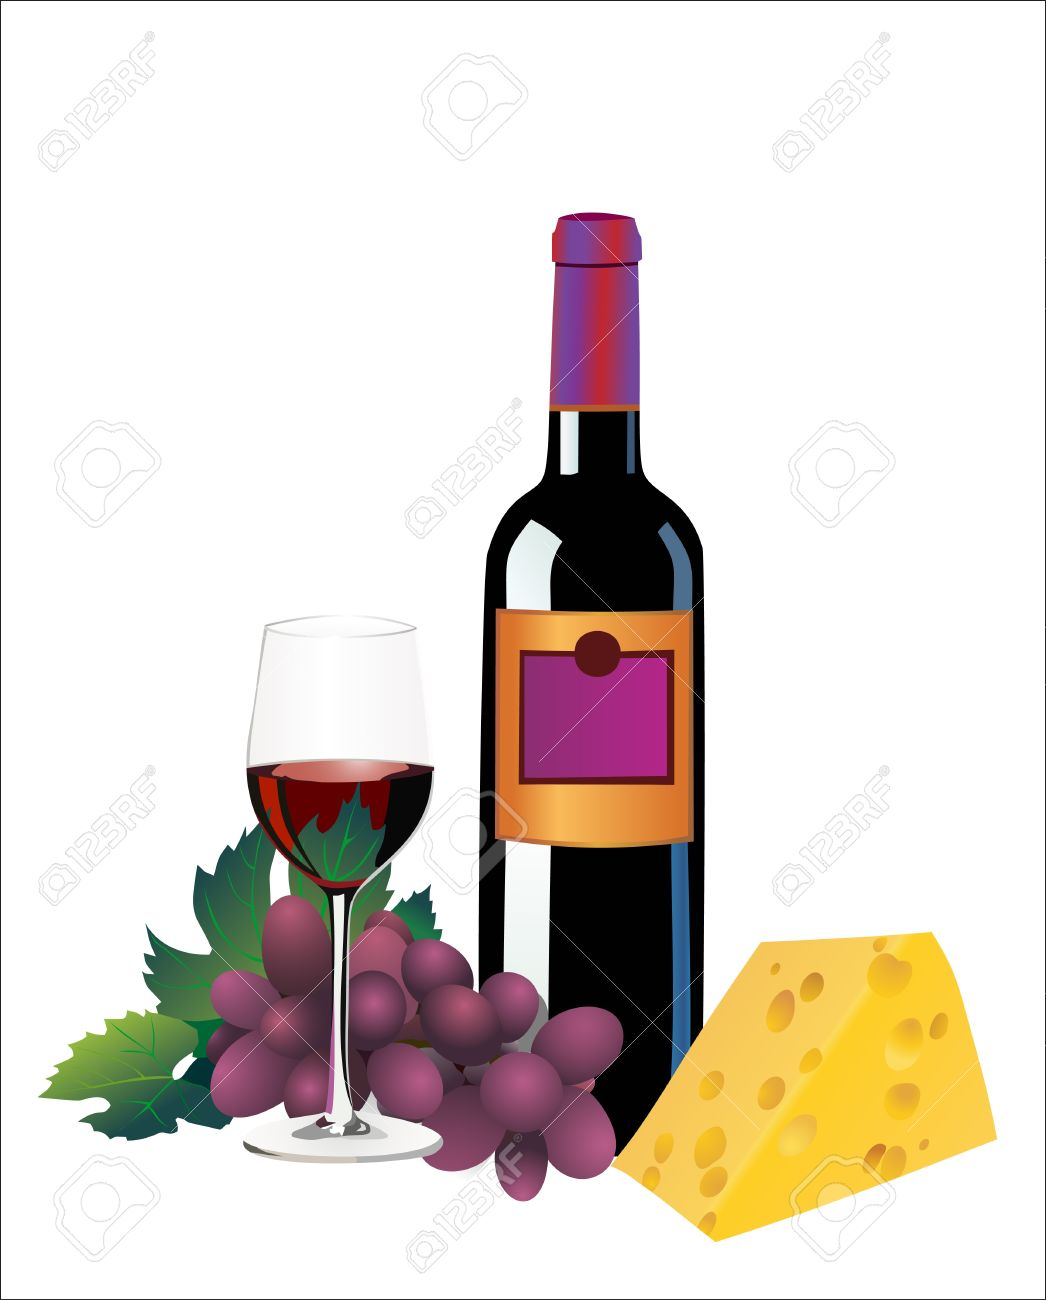 Cheese clipart wine glass Cheese And Clipart Wine Wine